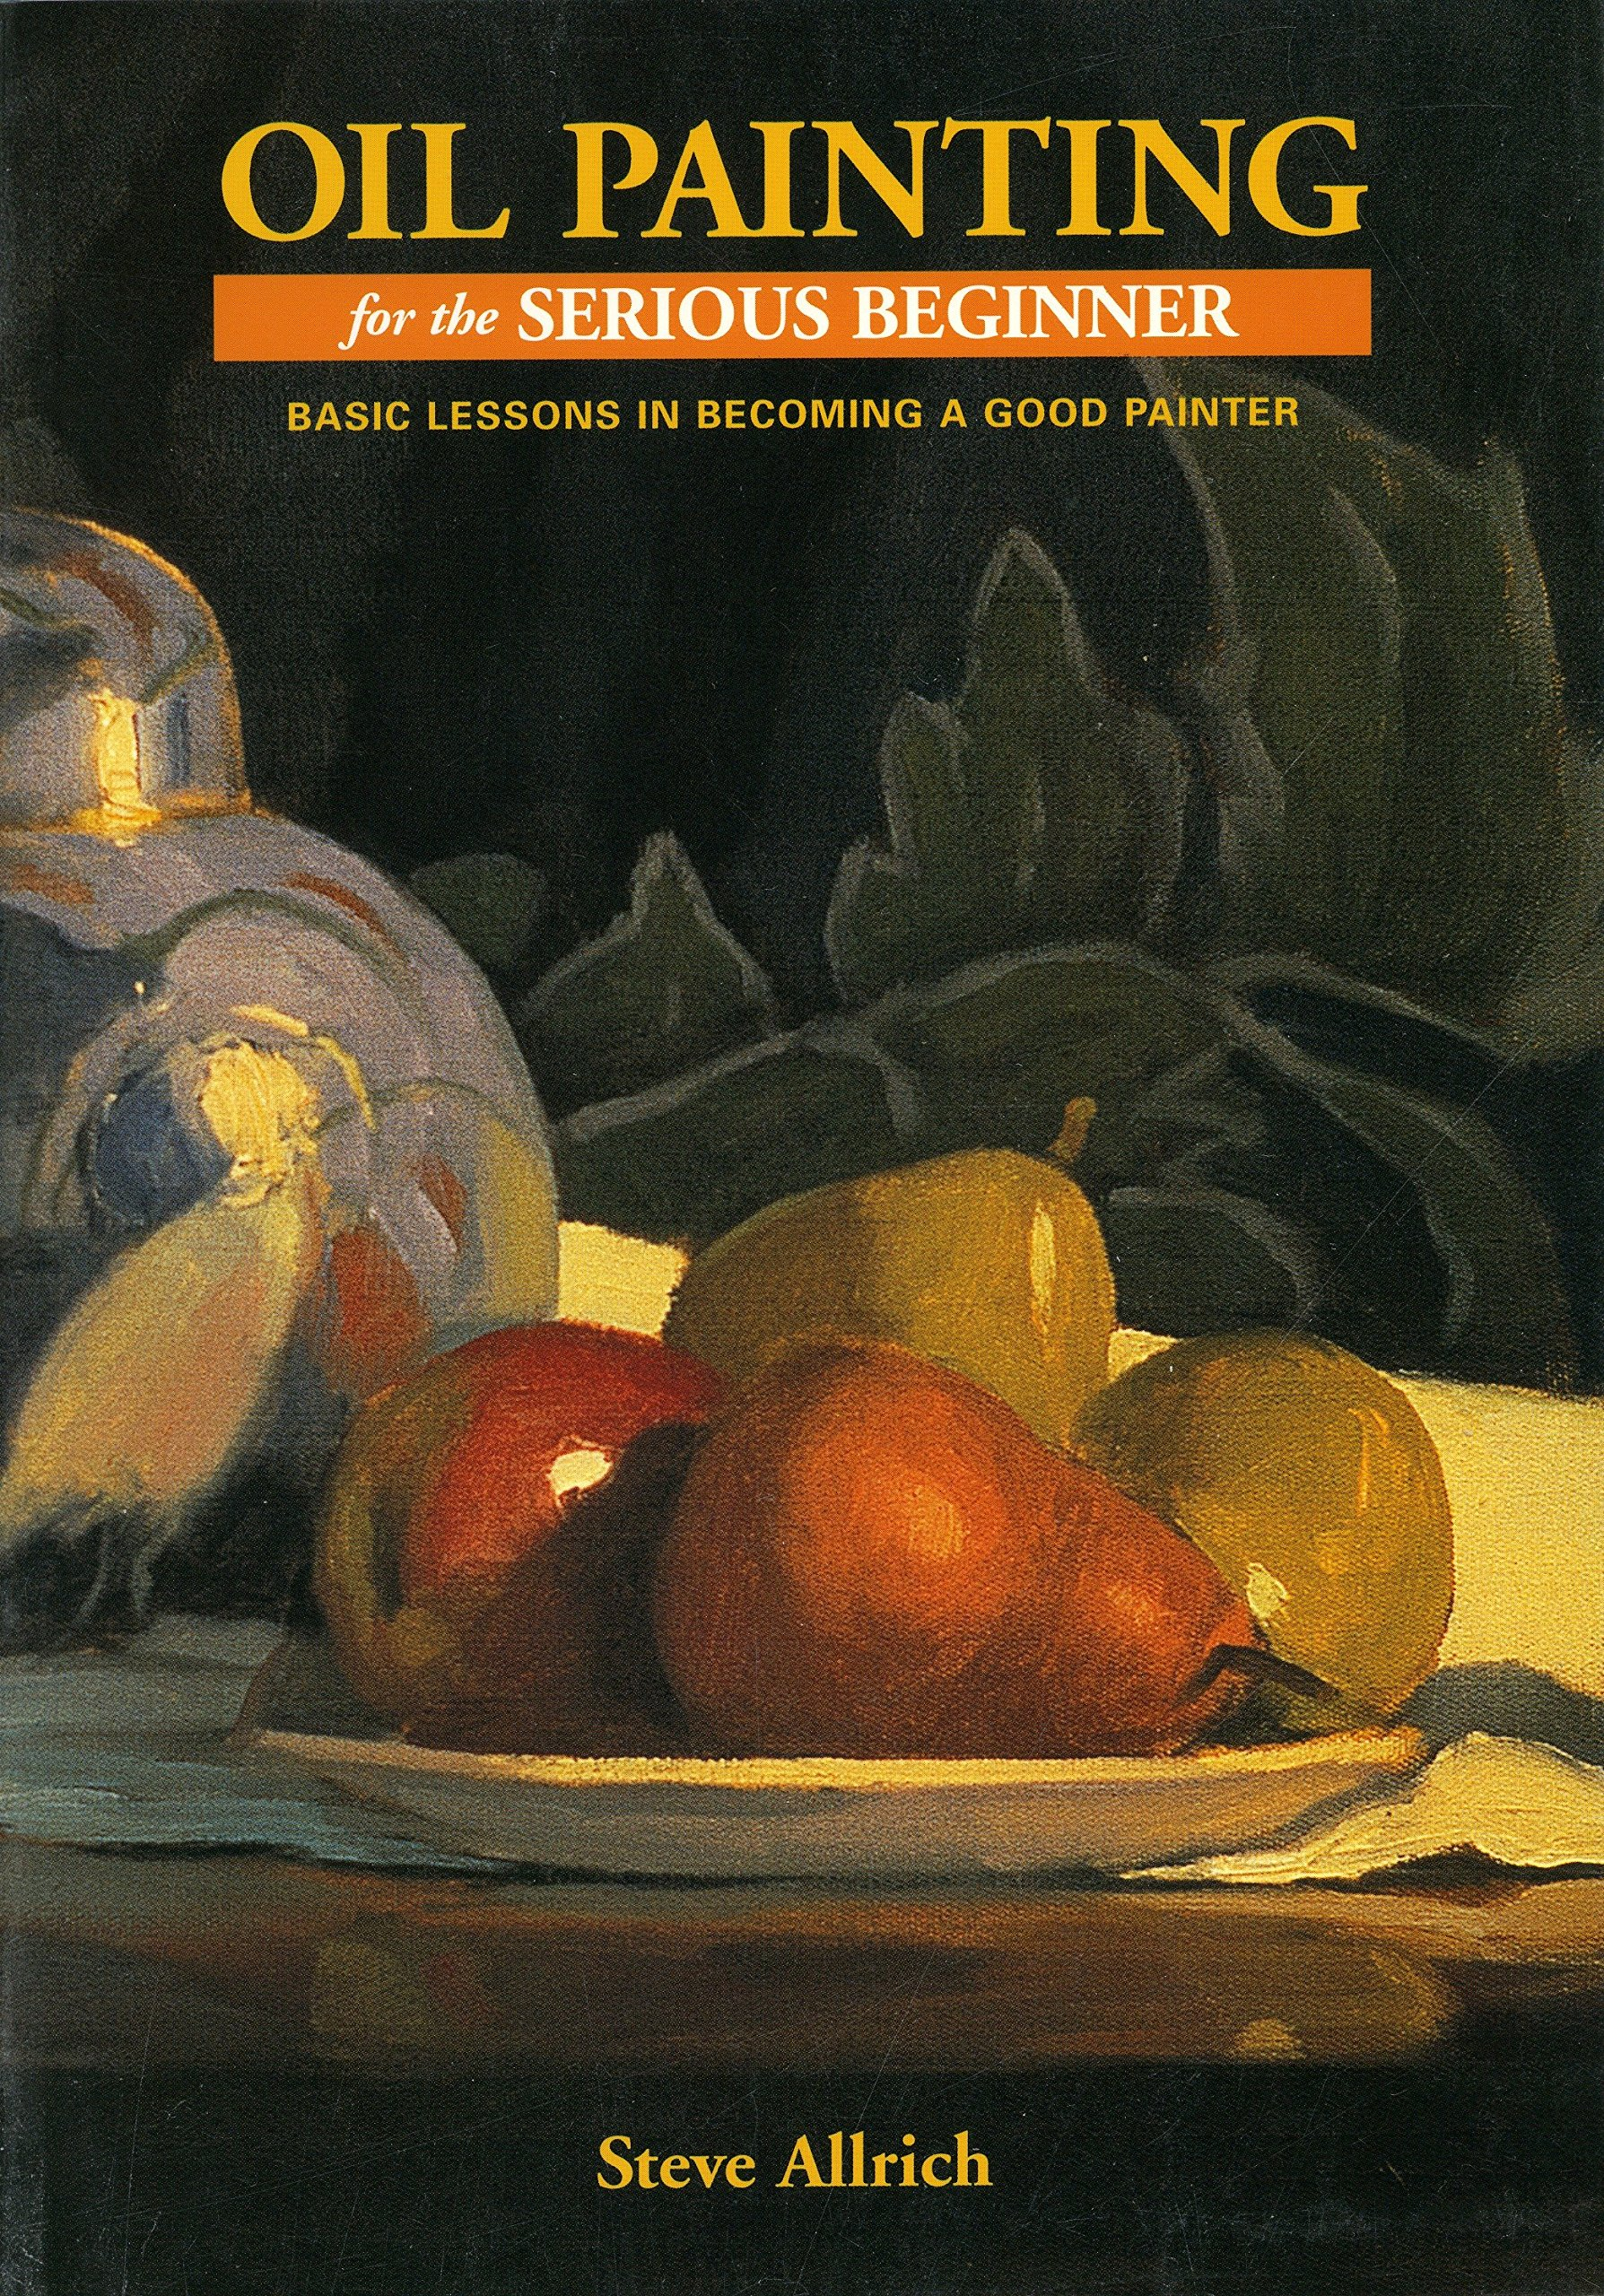 Oil Painting for the Serious Beginner: Basic Lessons in Becoming a Good  Painter: Steve Allrich: 9780823032693: Amazon.com: Books